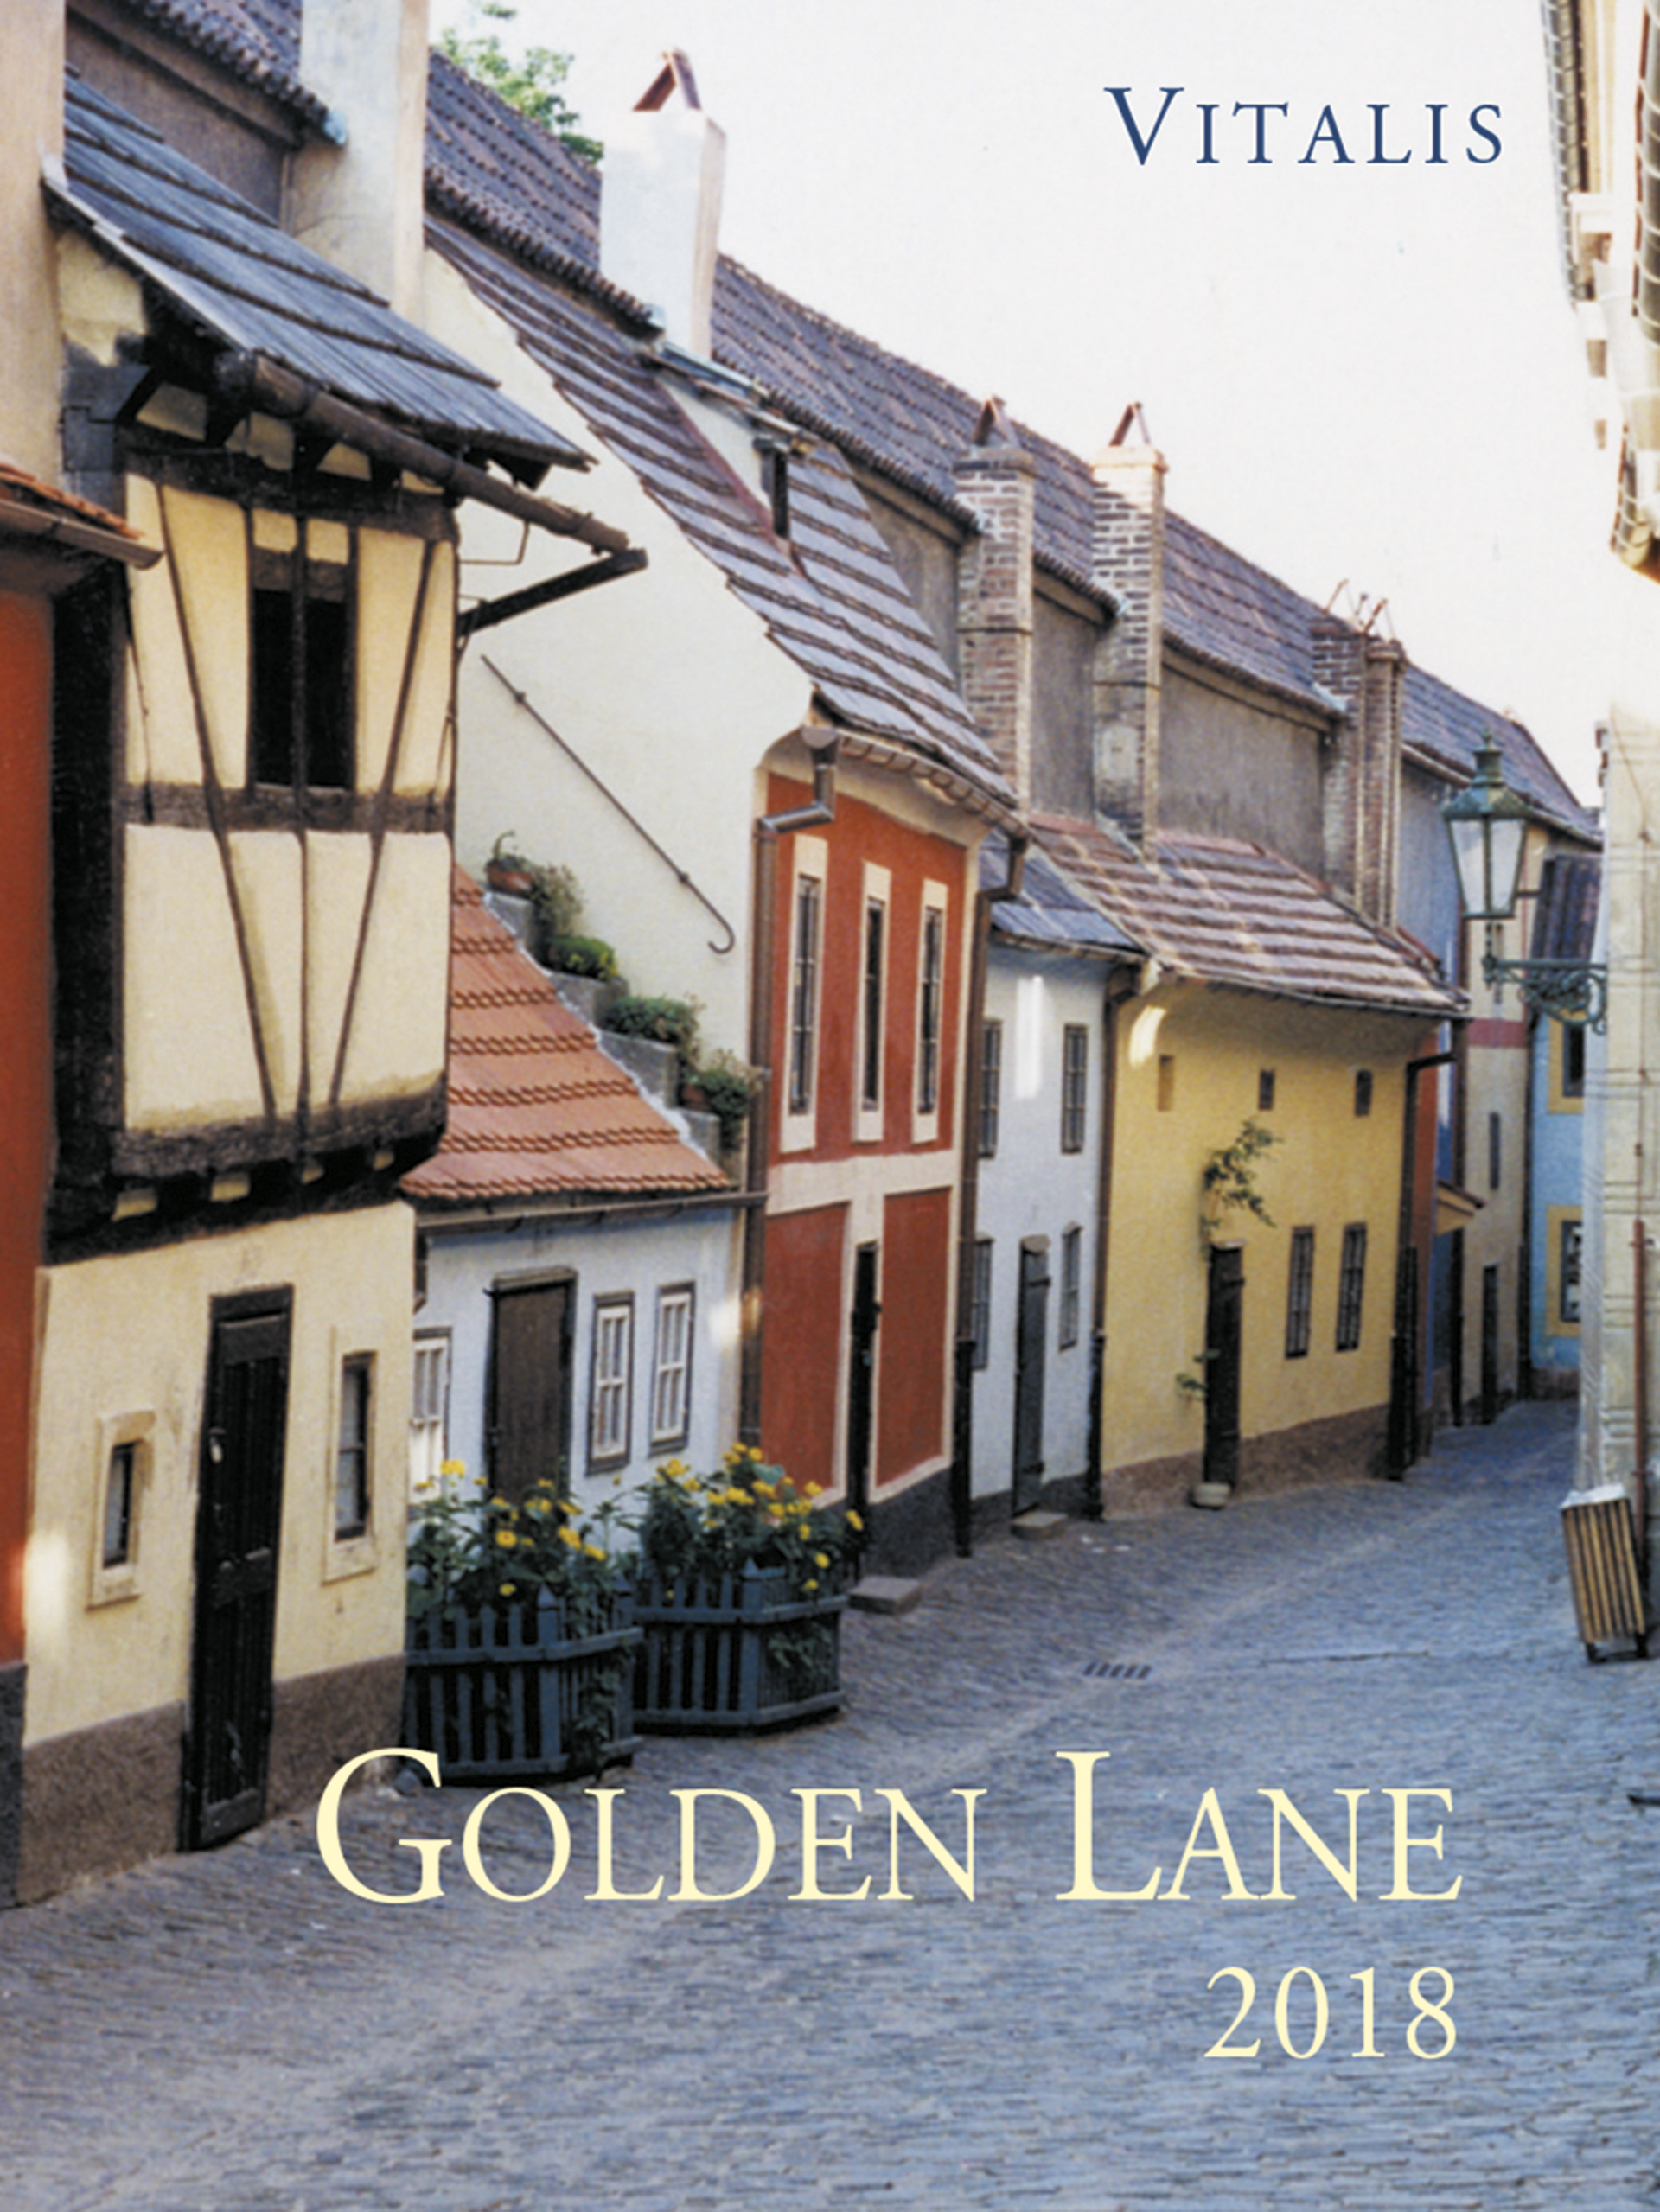 Minikalender Golden Lane 2018